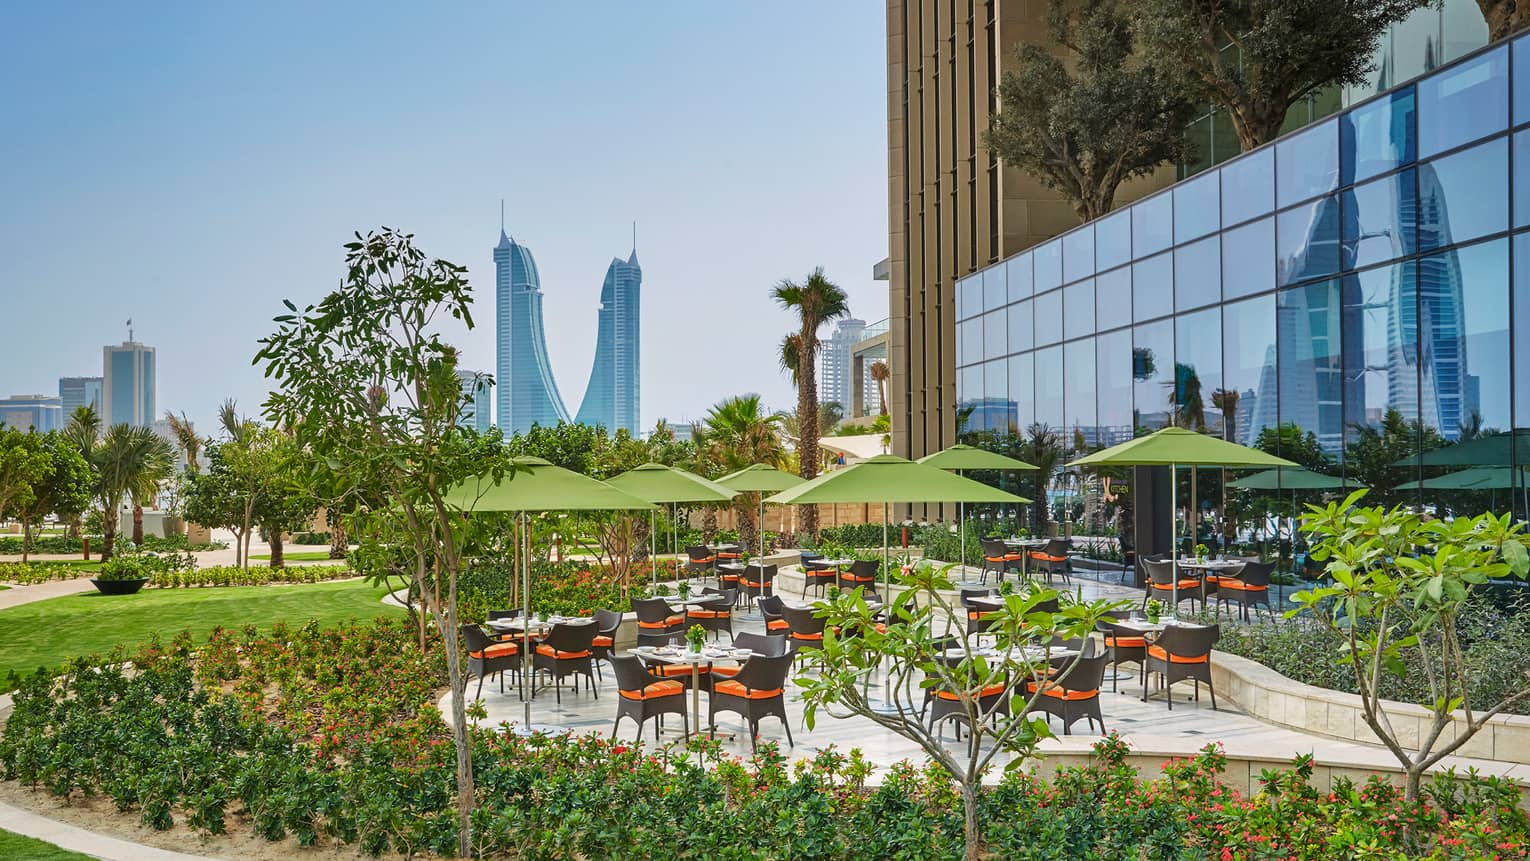 Bahrain Bay Kitchen outdoor patio tables, umbrellas, surrounded by green gardens, lawn